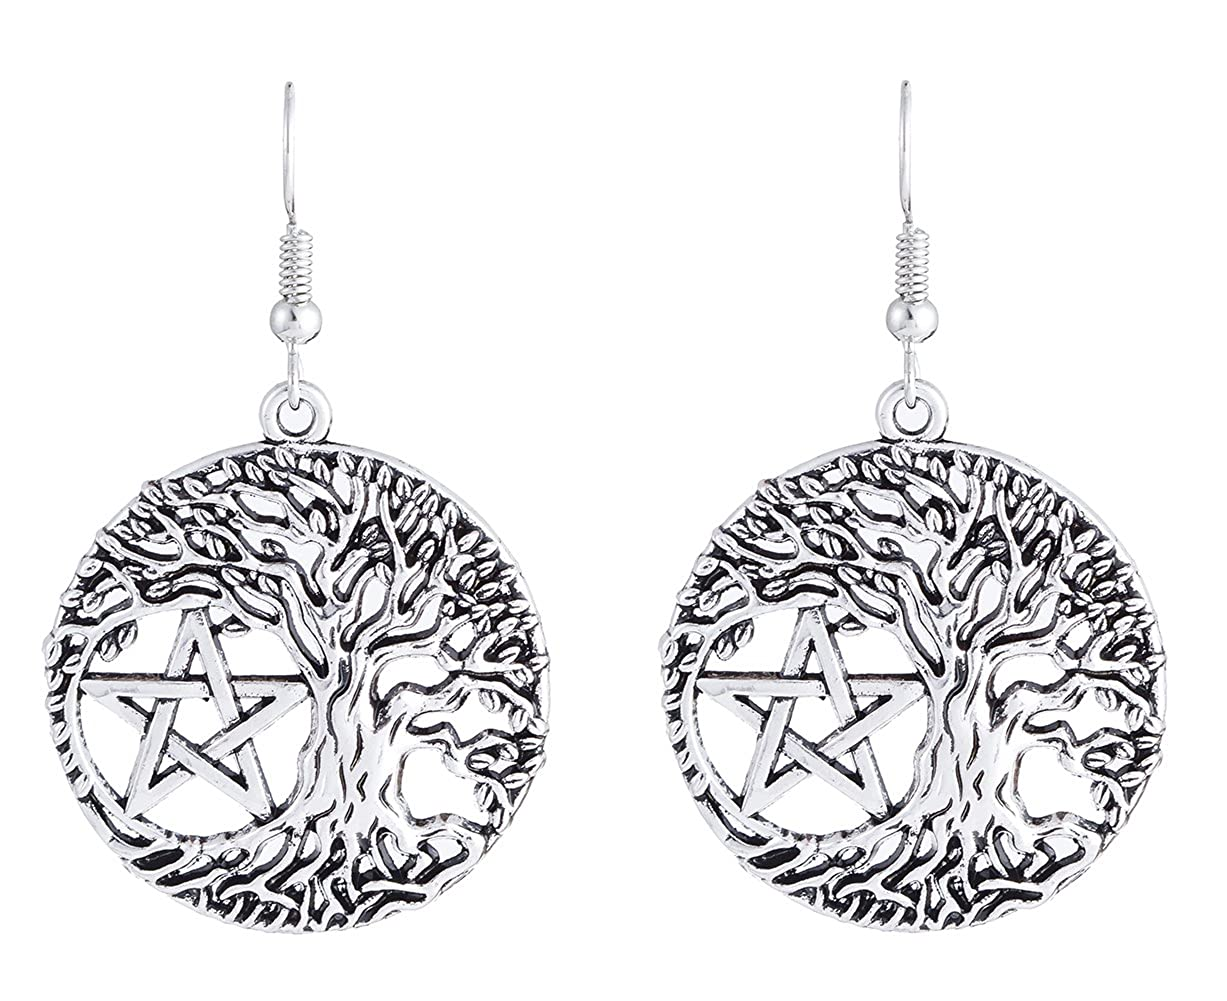 Lemegeton Punk Vintage Yggdrasil Tree of Life Pentacle Talisman Charm Drop Earrings Wiccan Pagan Jewelry for Women BiChuang